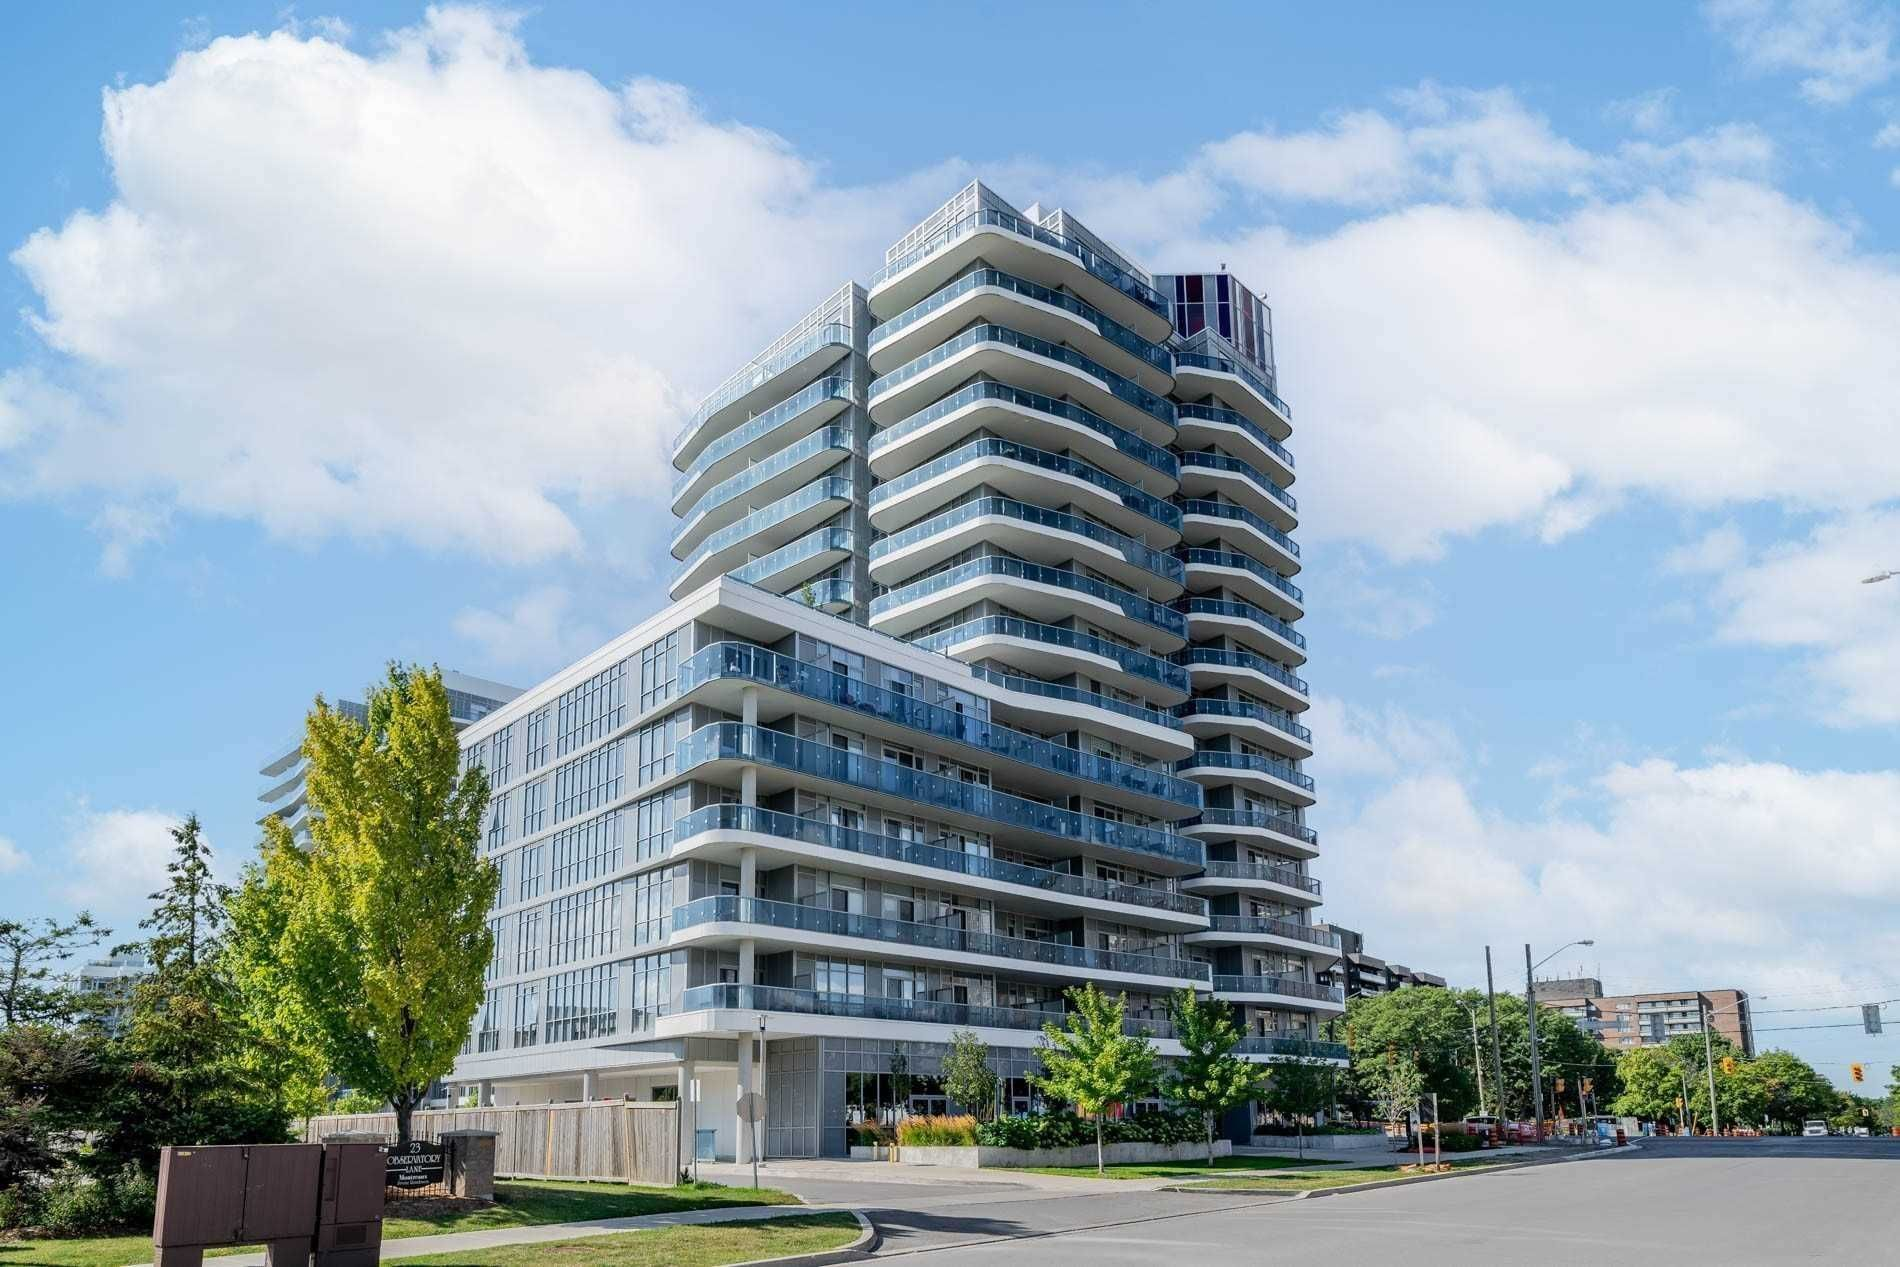 9471 Yonge St, unit 810 for sale in Toronto - image #1